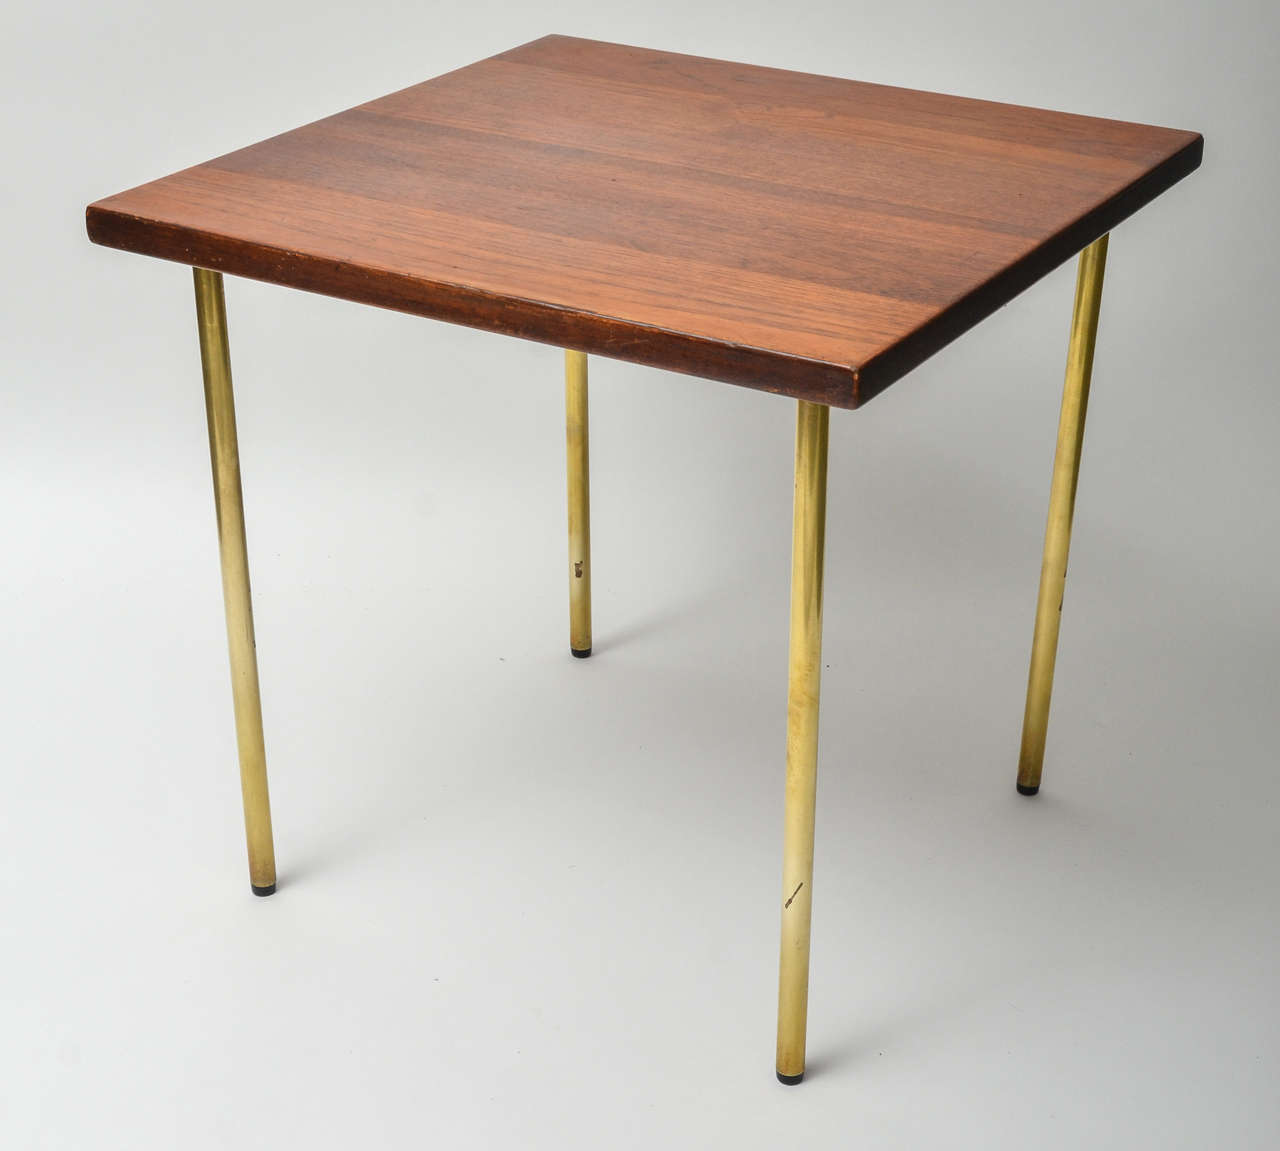 France and son teak and brass side table danish circa 1960 at france son teak and brass side table danish circa 1960 2 geotapseo Image collections